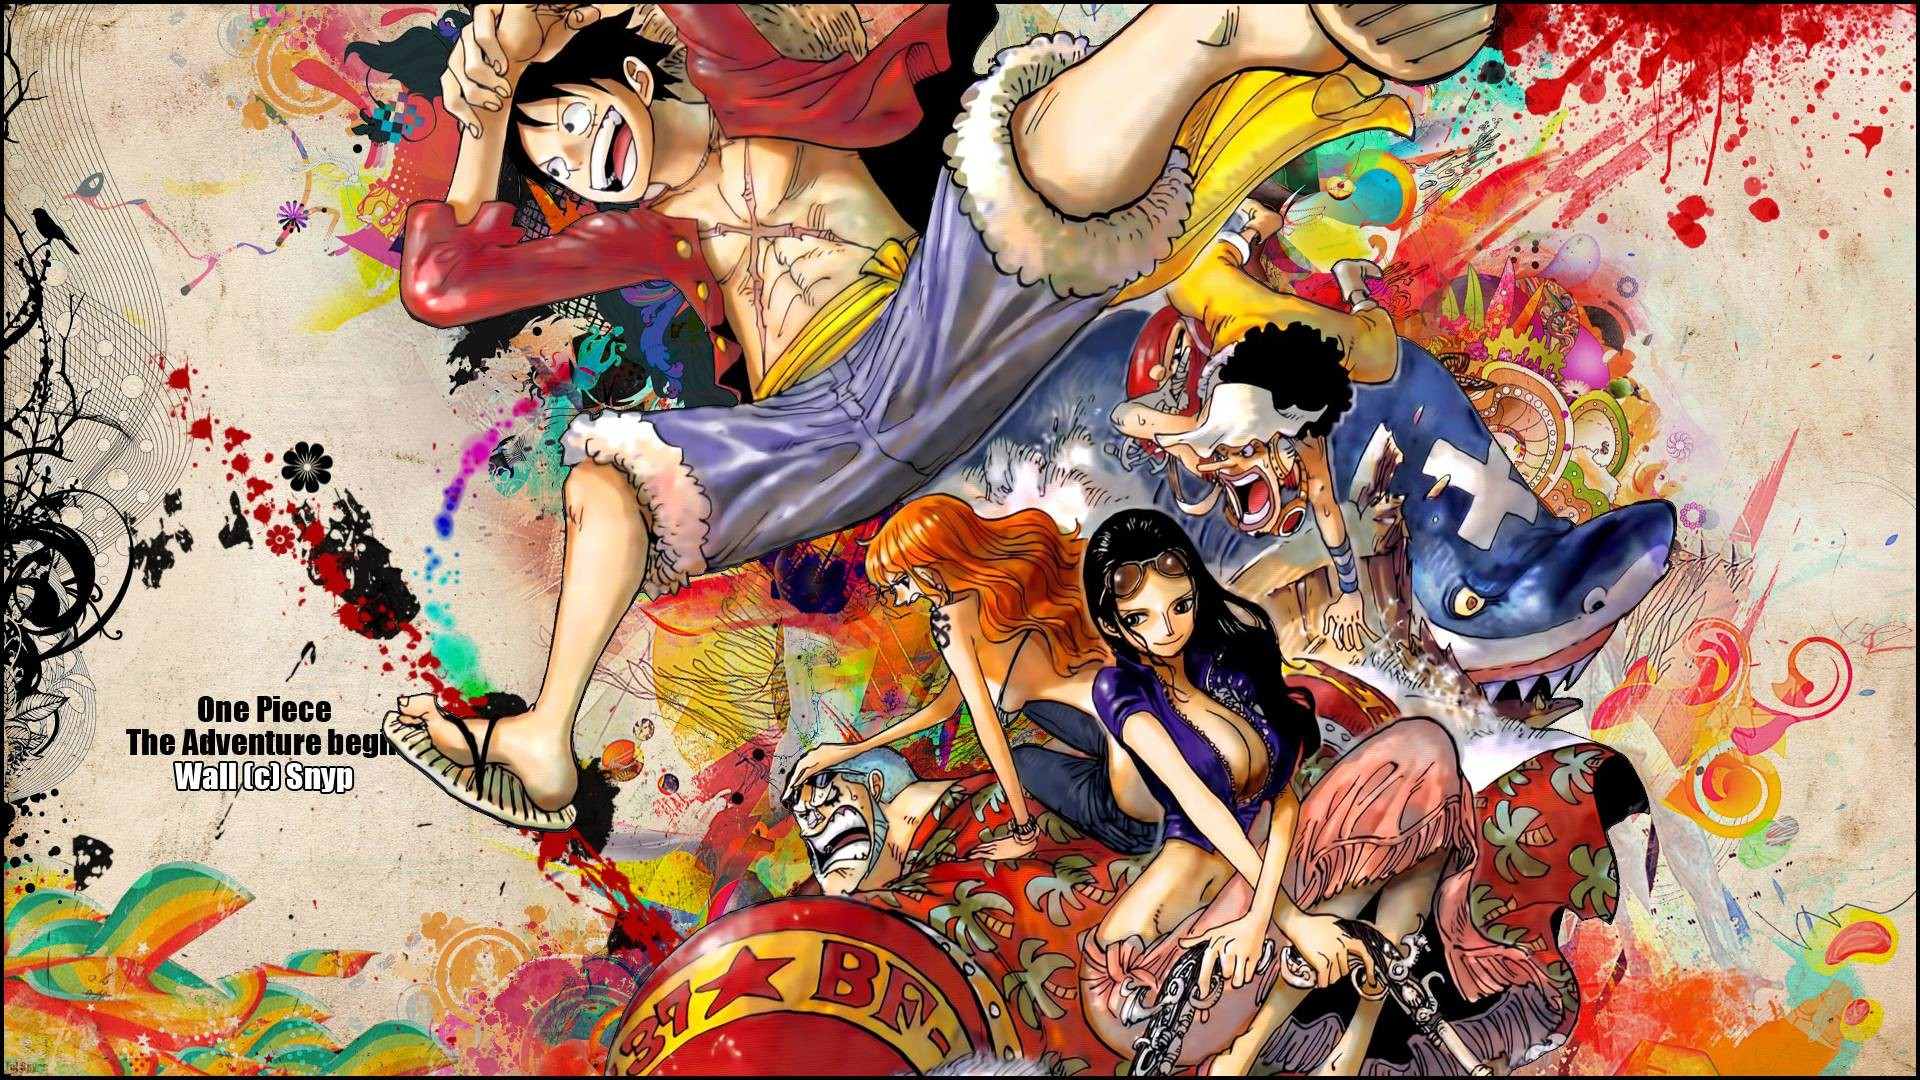 One Piece Wallpaper 1080p Wallpapertag